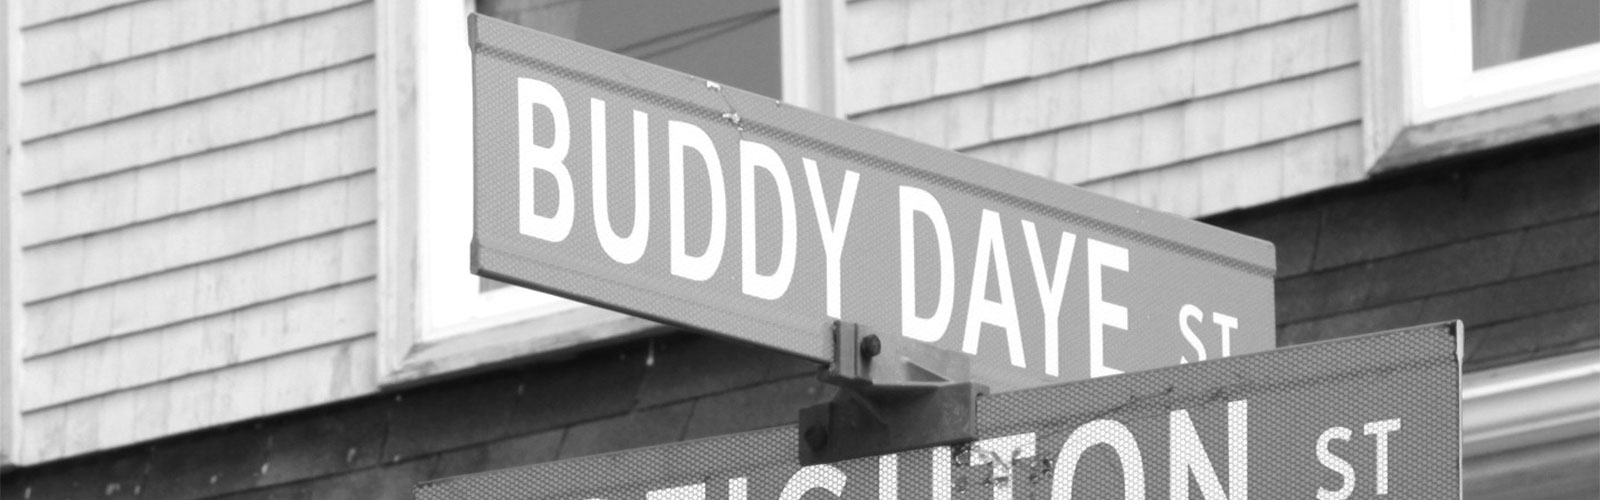 Buddy_Daye_Sign_bg1